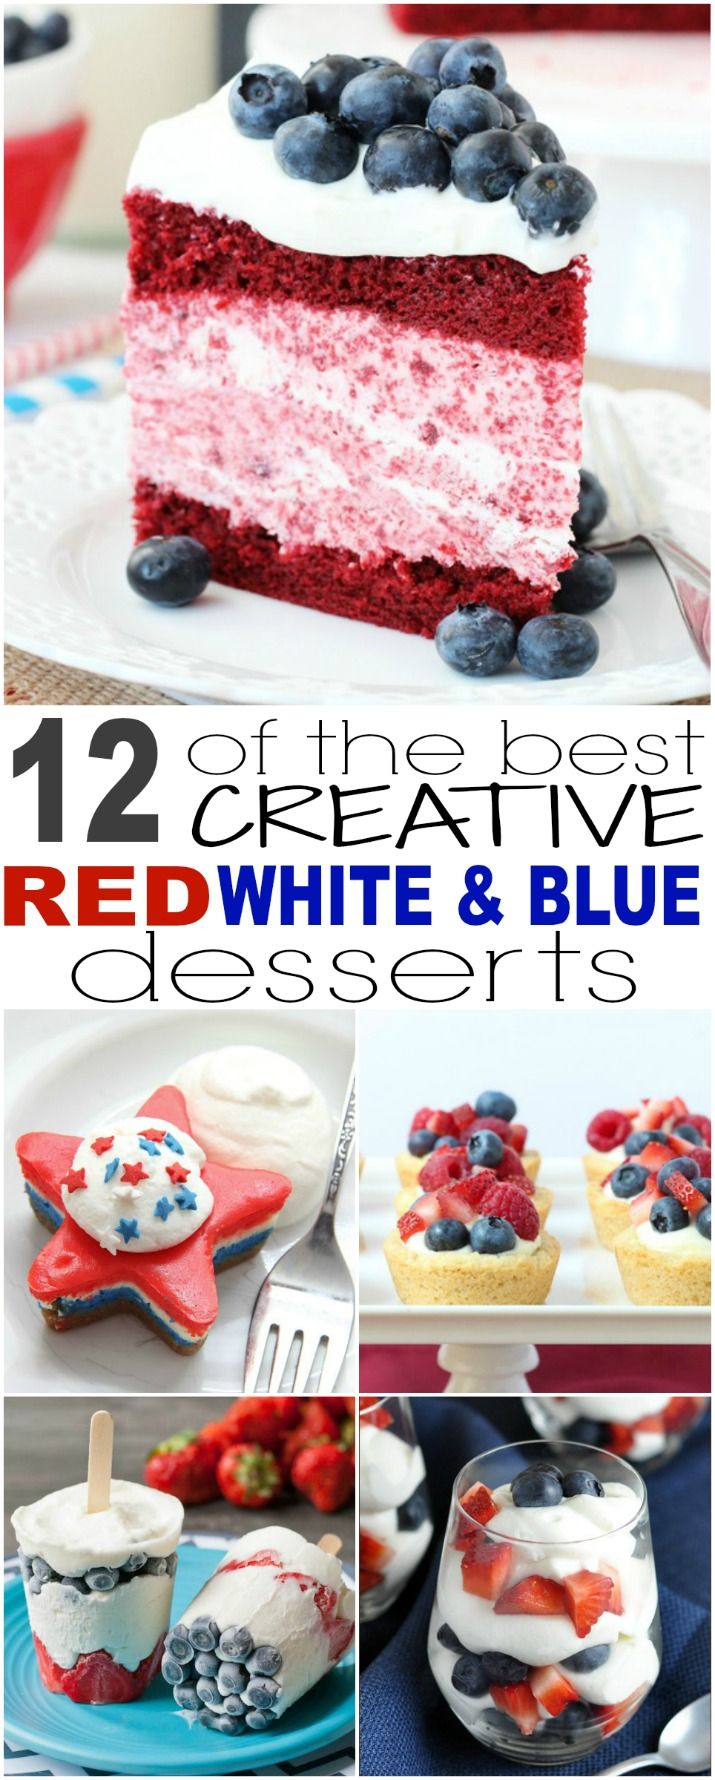 12 of the Best Creative Red White and Blue Desserts, perfect for the 4th of July, Memorial Day, or Labor Day weekend!